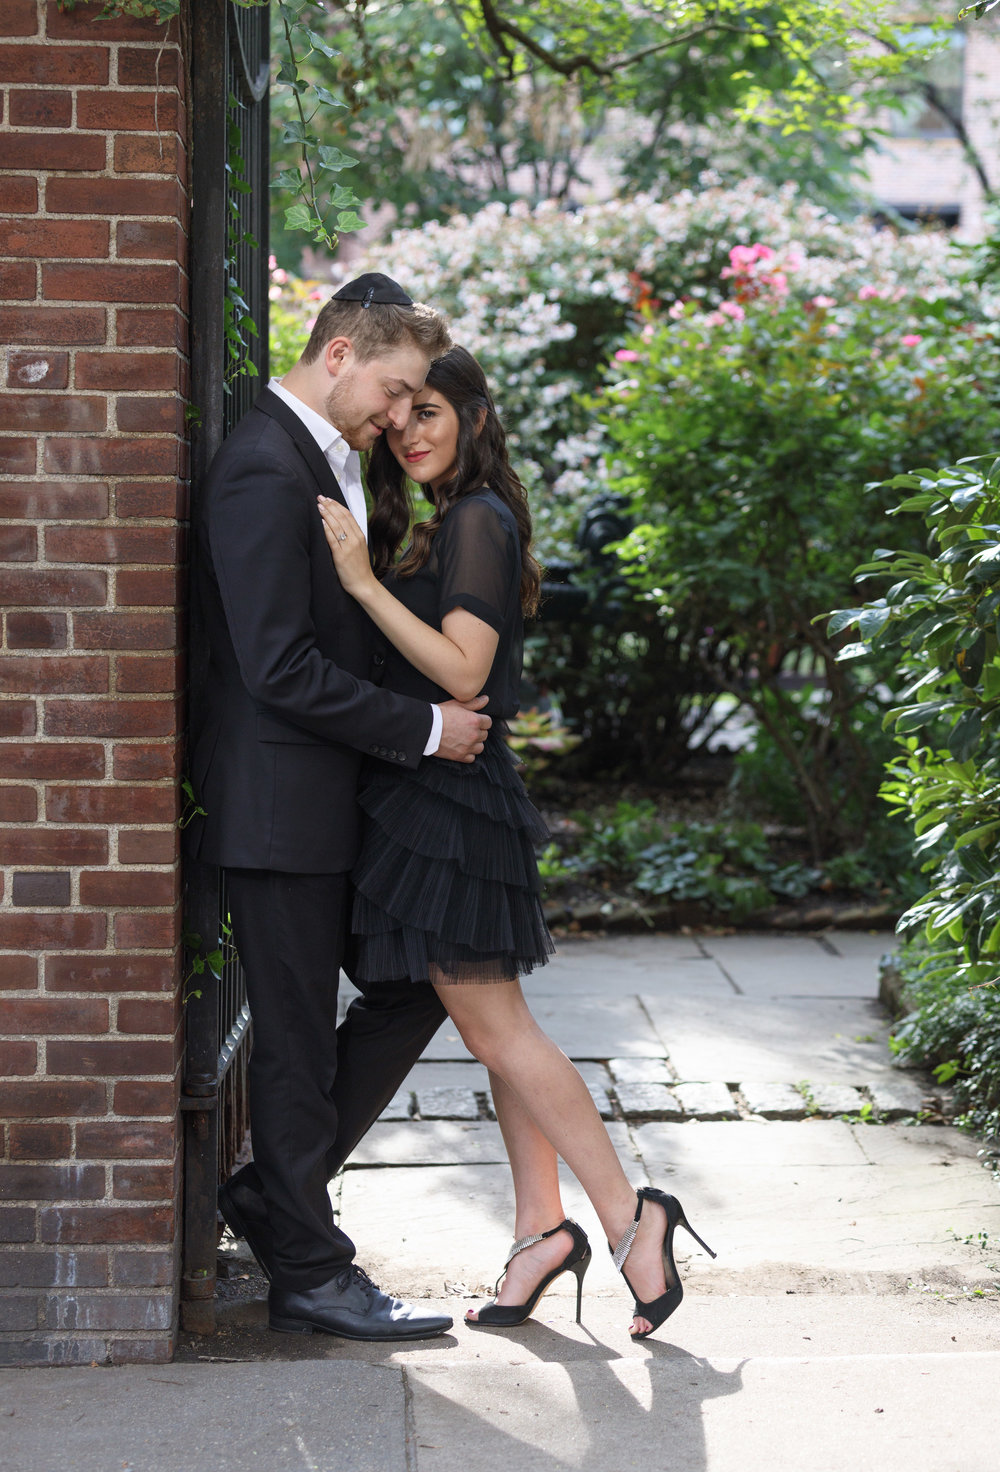 Posing Tips For Your Wedding Day+Esther+Santer+Fashion+Blog+NYC+Street+Style+Blogger+Outfits+OOTD+Trendy+Engagement+Shoot+Photoshoot+Lilian+Haidar+Photography+Wedding+Season+Date+Shoes+Dress+Suit+Fancy+ Formal+Happy+Smile+Heels+Hair+Girl Love Couple.jpg